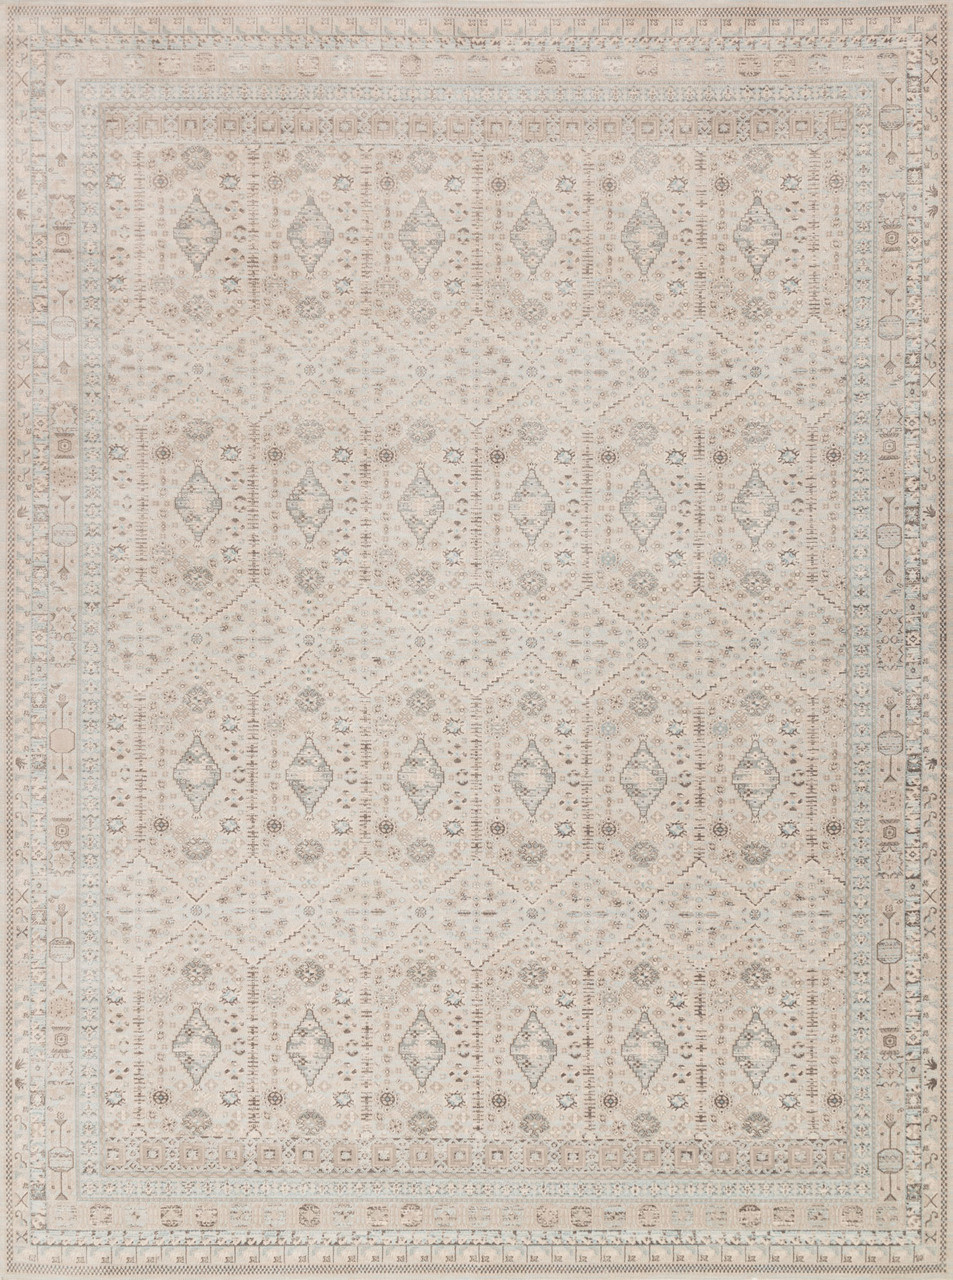 90b76e582 Magnolia Home Ella Rose EJ-03 STONE by Joanna Gaines.  Free-Shipping-Rug-Fashion-Store